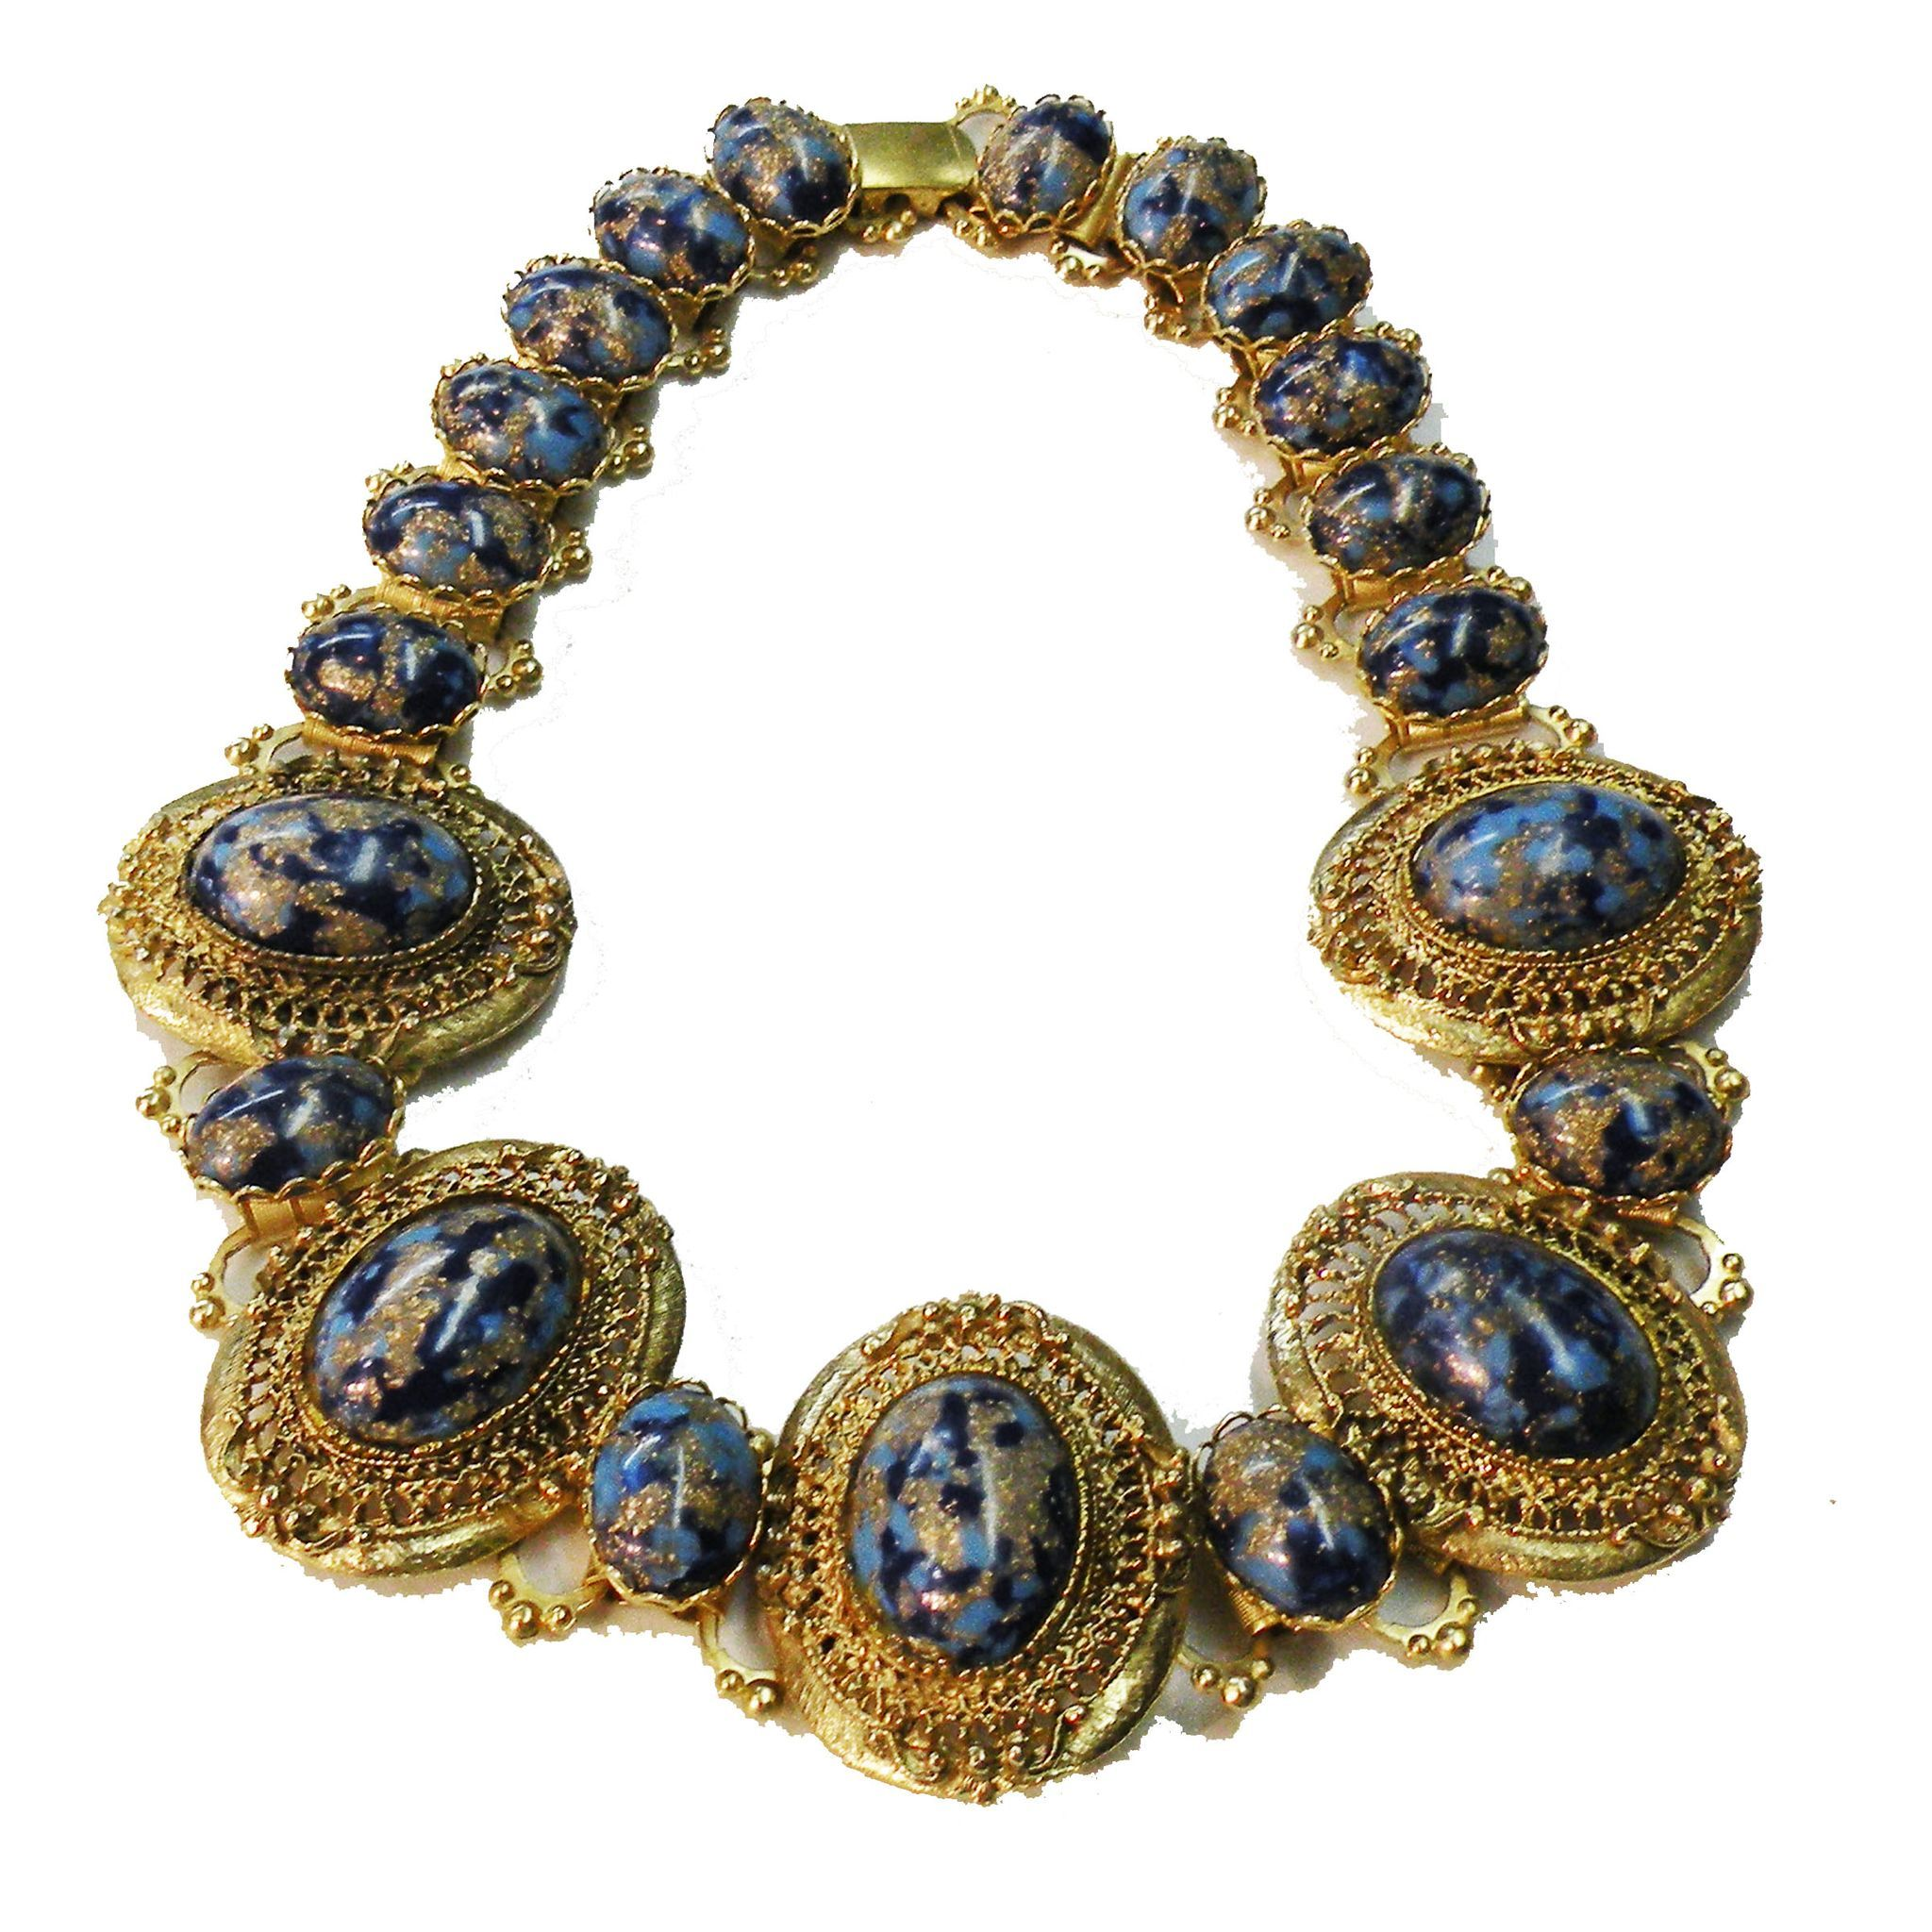 Renaissance Revival Shades of Medium and Dark Blue with Copper Foil Cabochon Gold Tone Book Chain Necklace